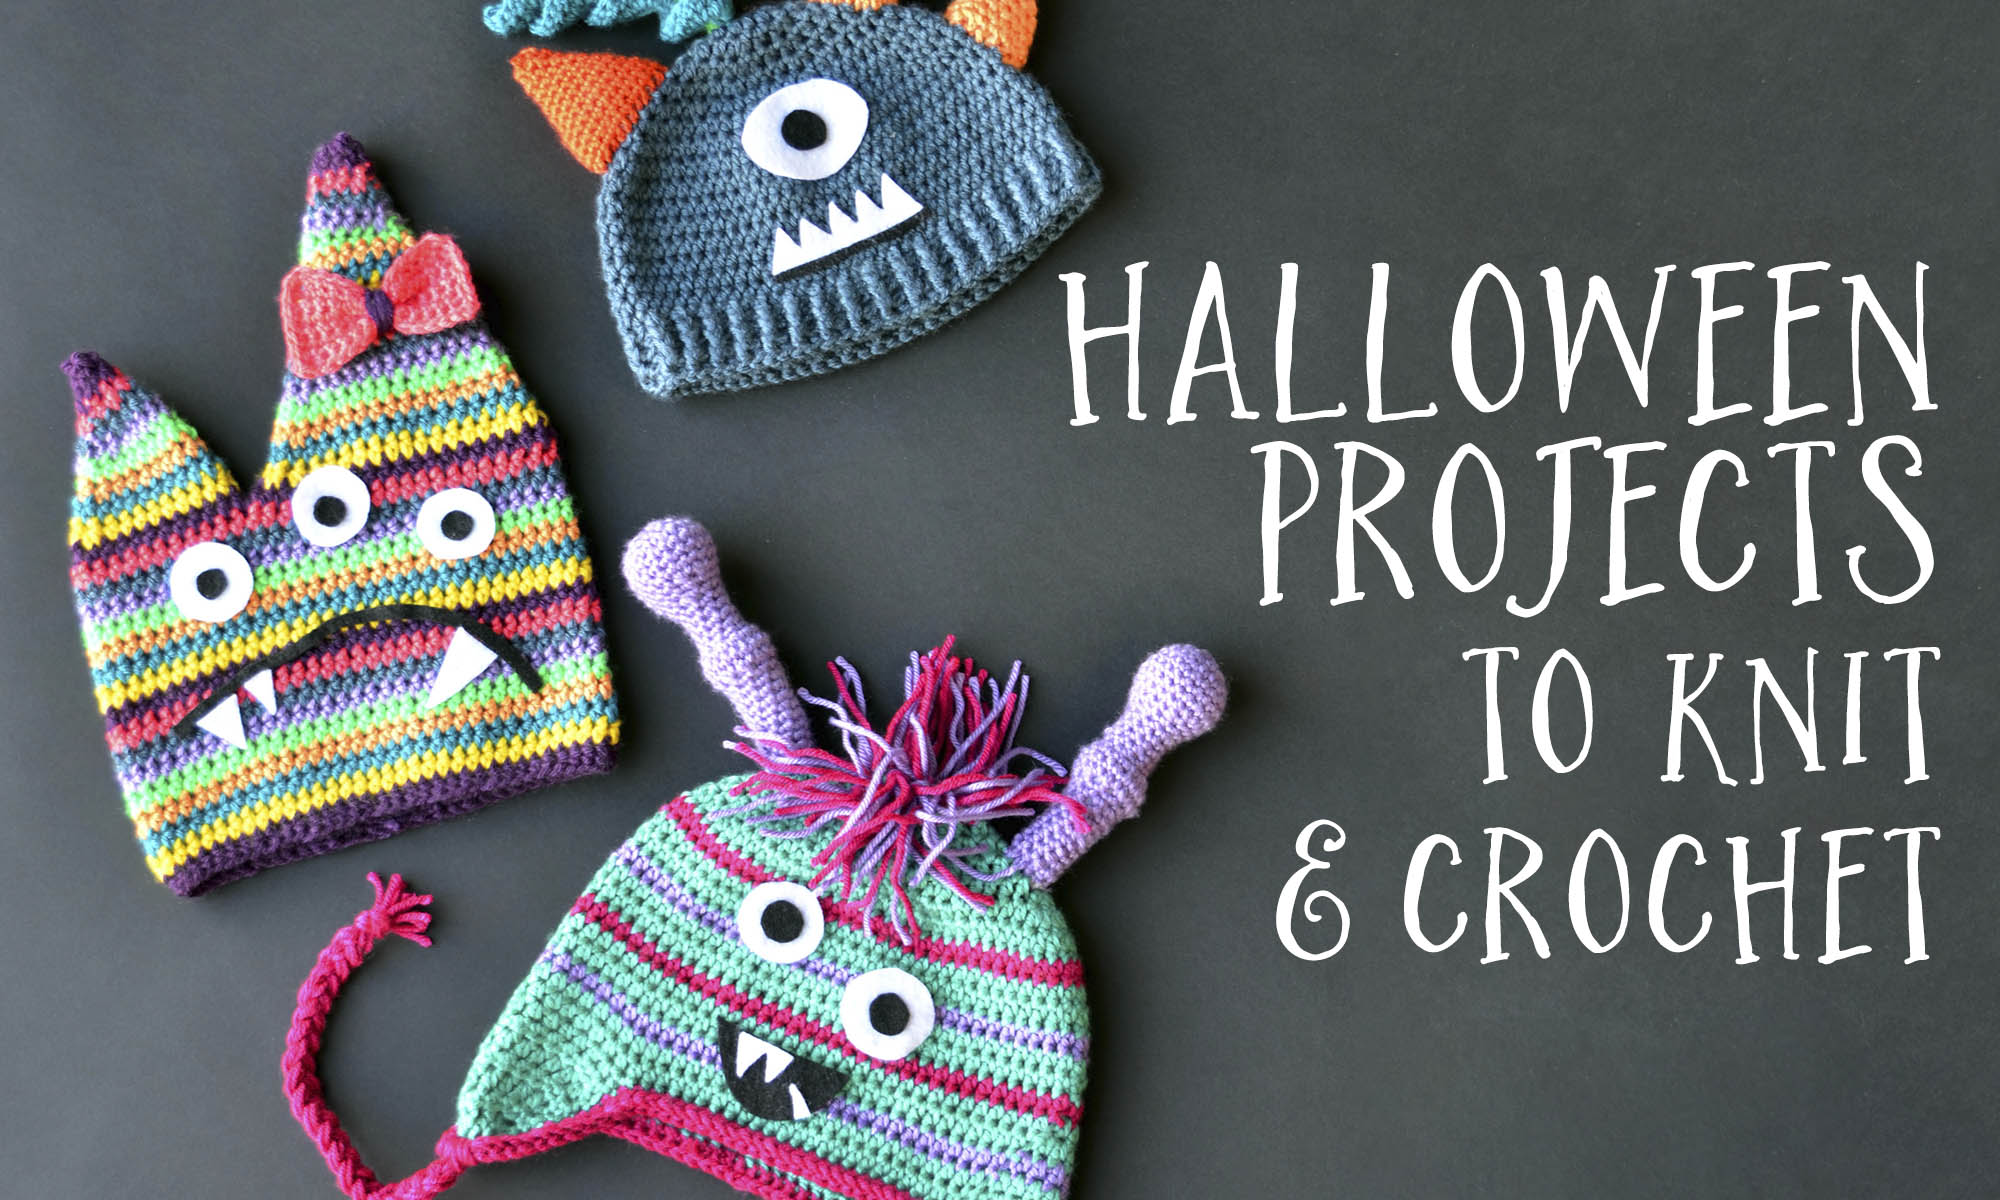 acb5163f8e5 Halloween Projects – Universal Yarn Creative Network